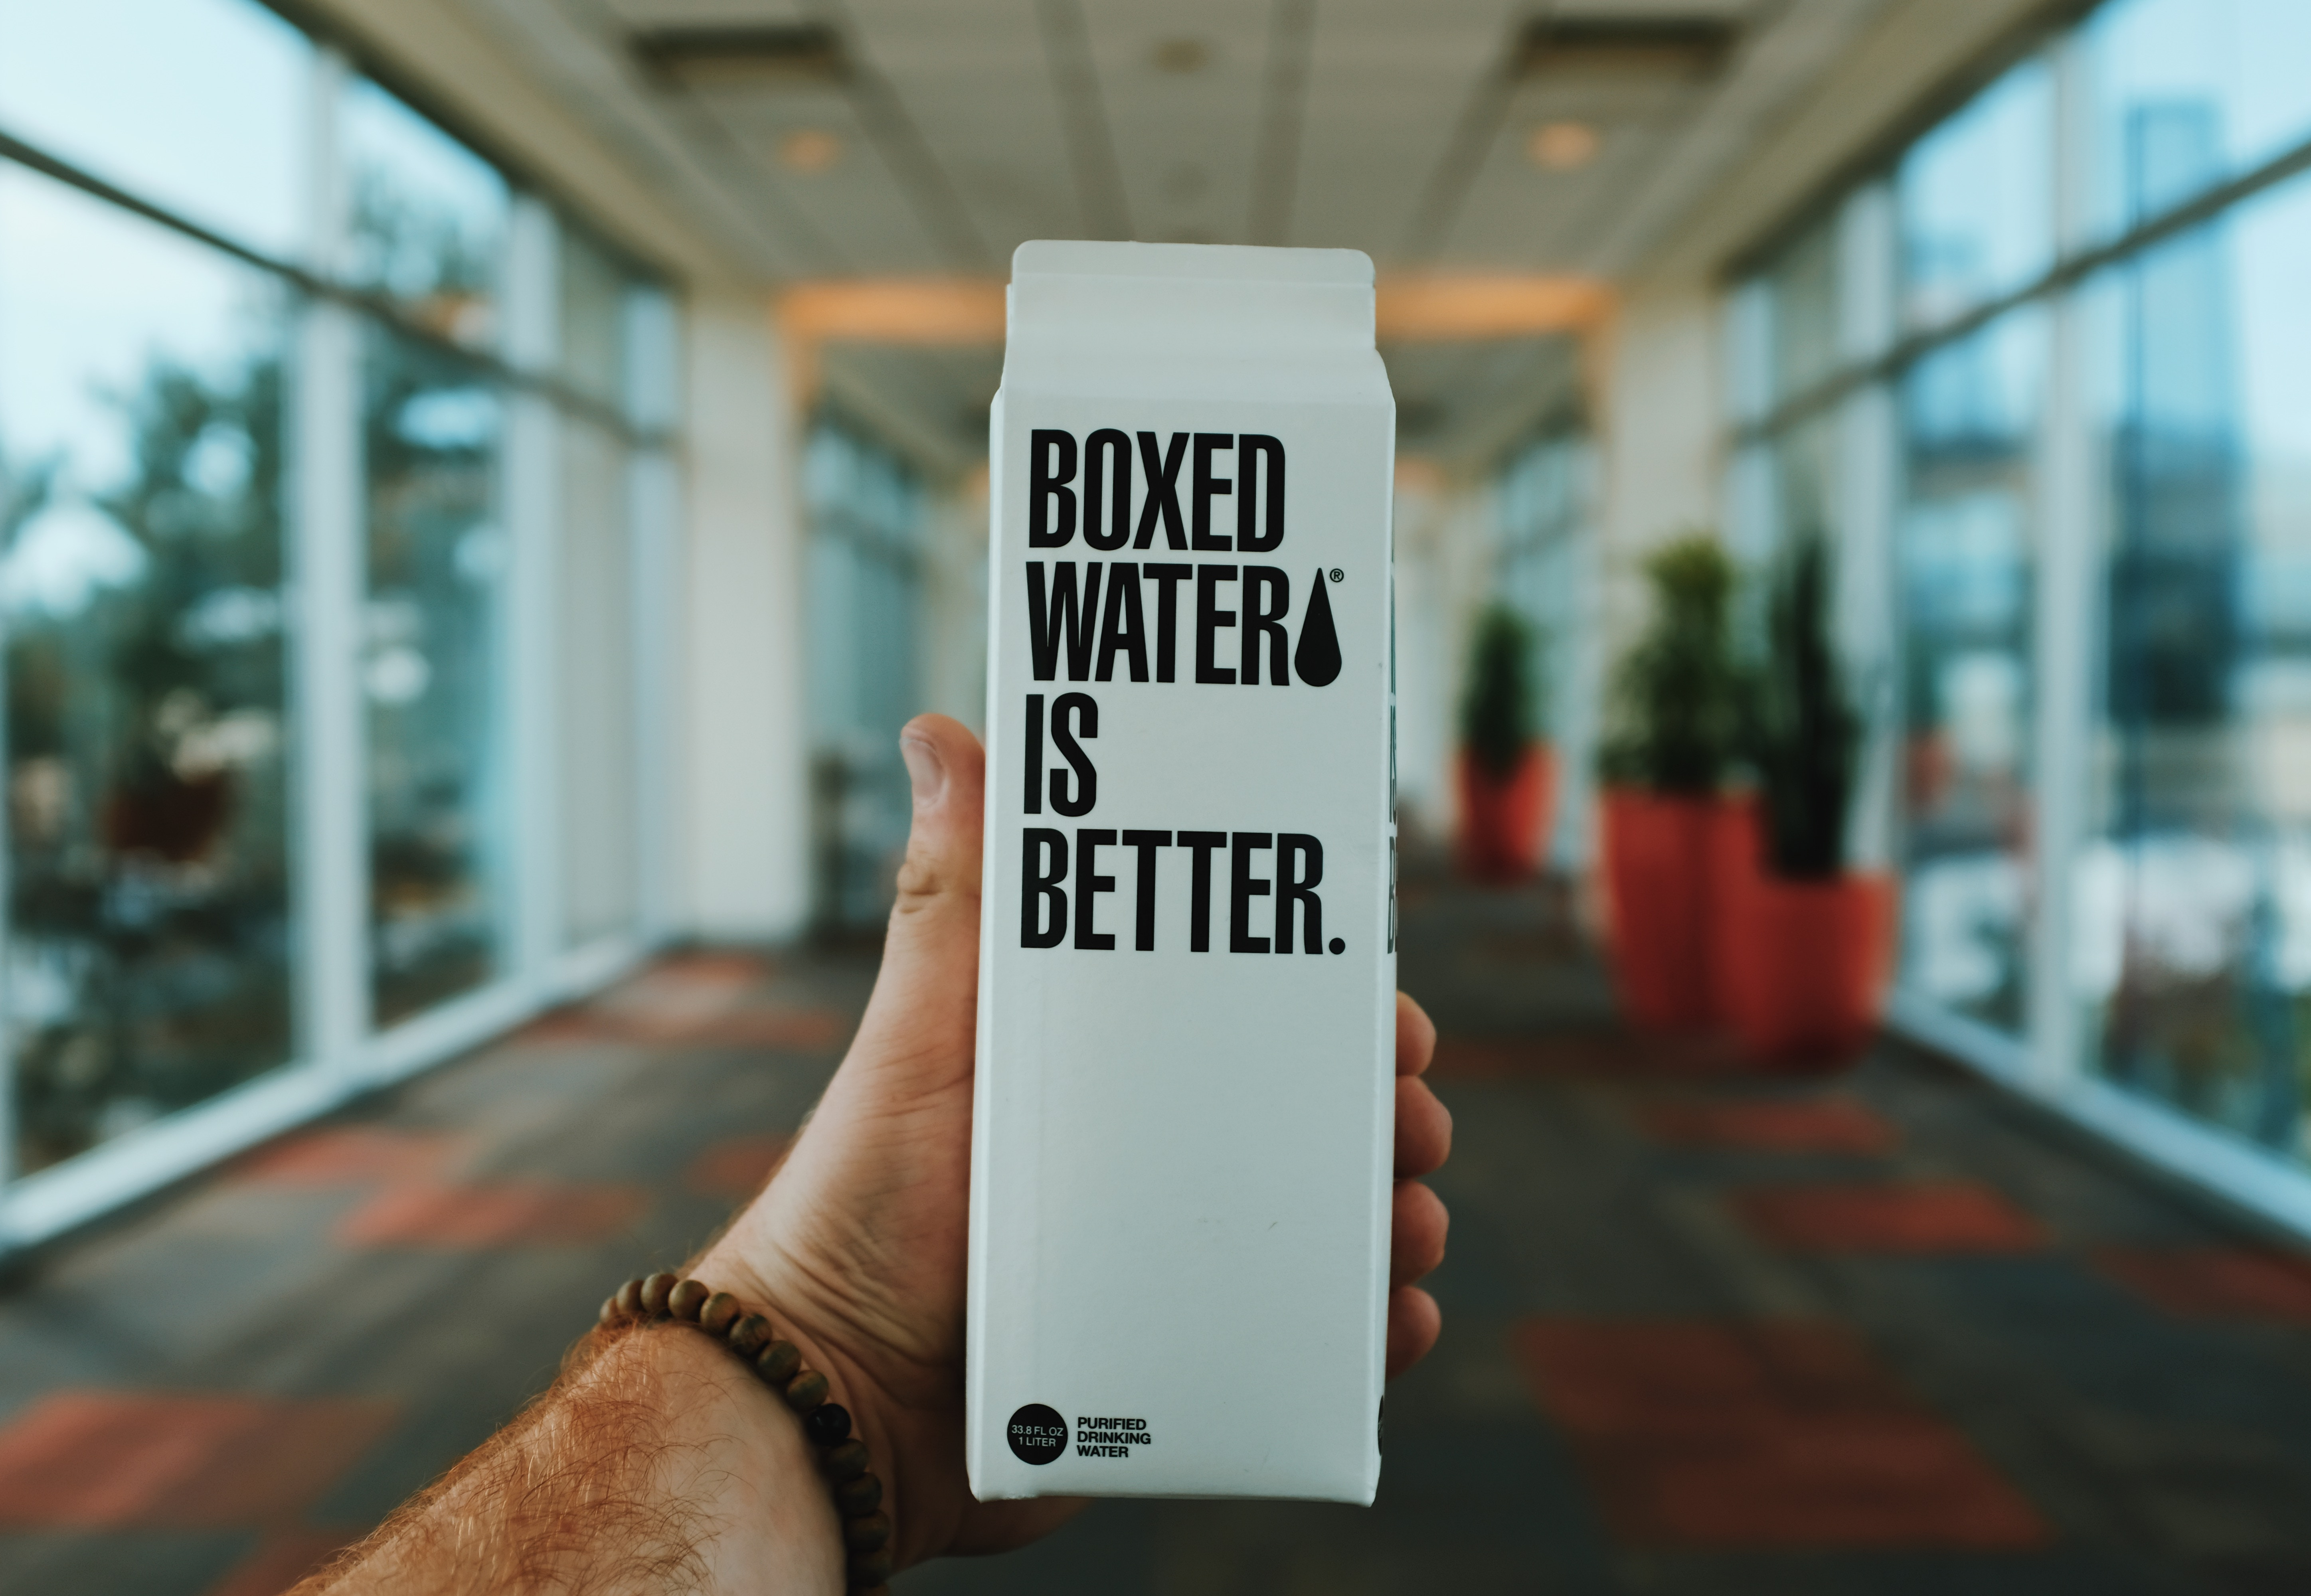 A hand holds Boxed Water, showing a bold statement on the label.